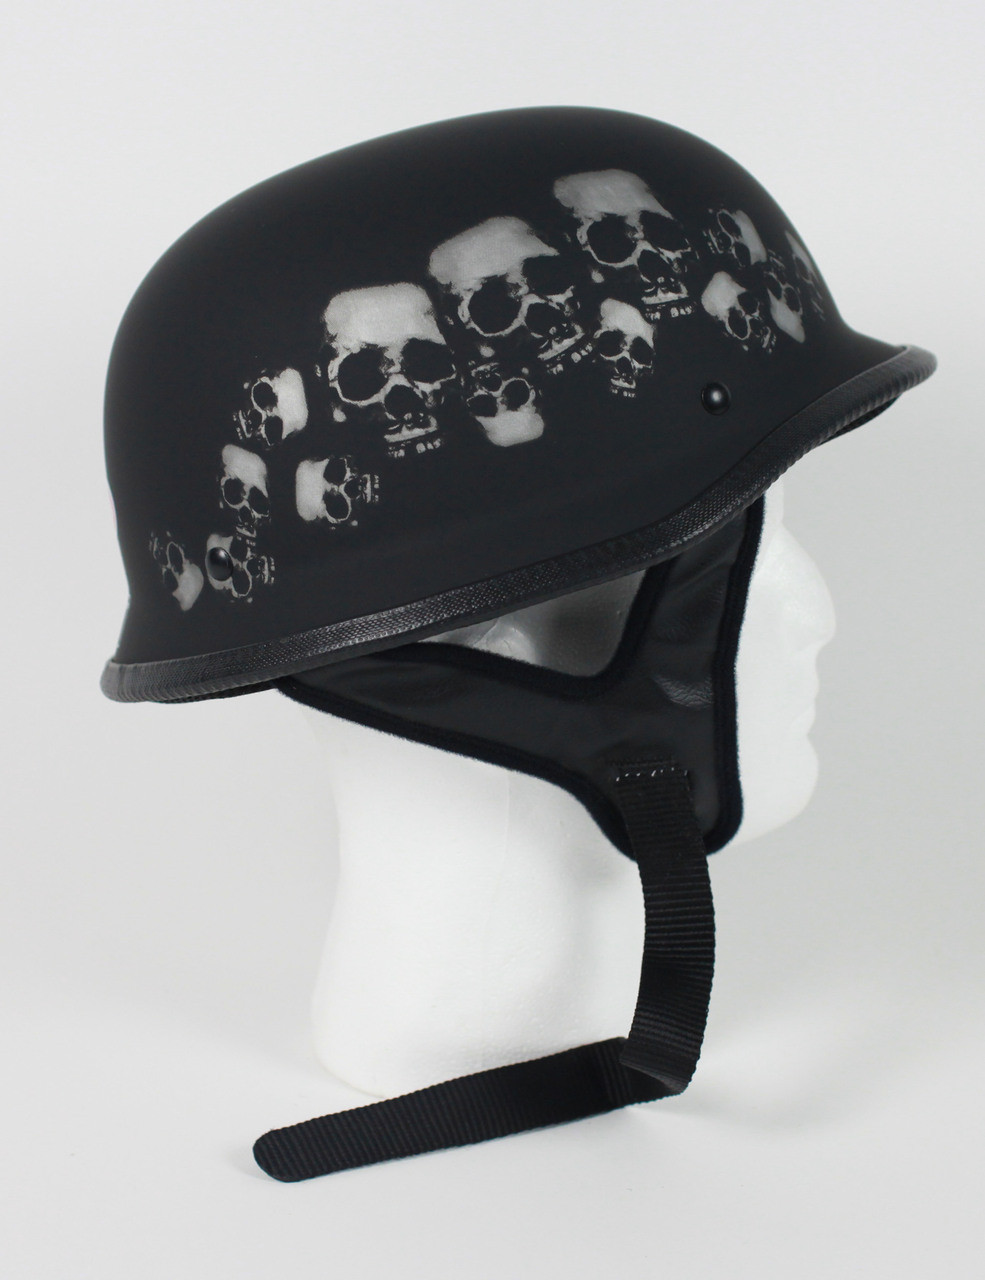 103SP - DOT German Skull Pile Motorcycle Half Helmet Skull cap